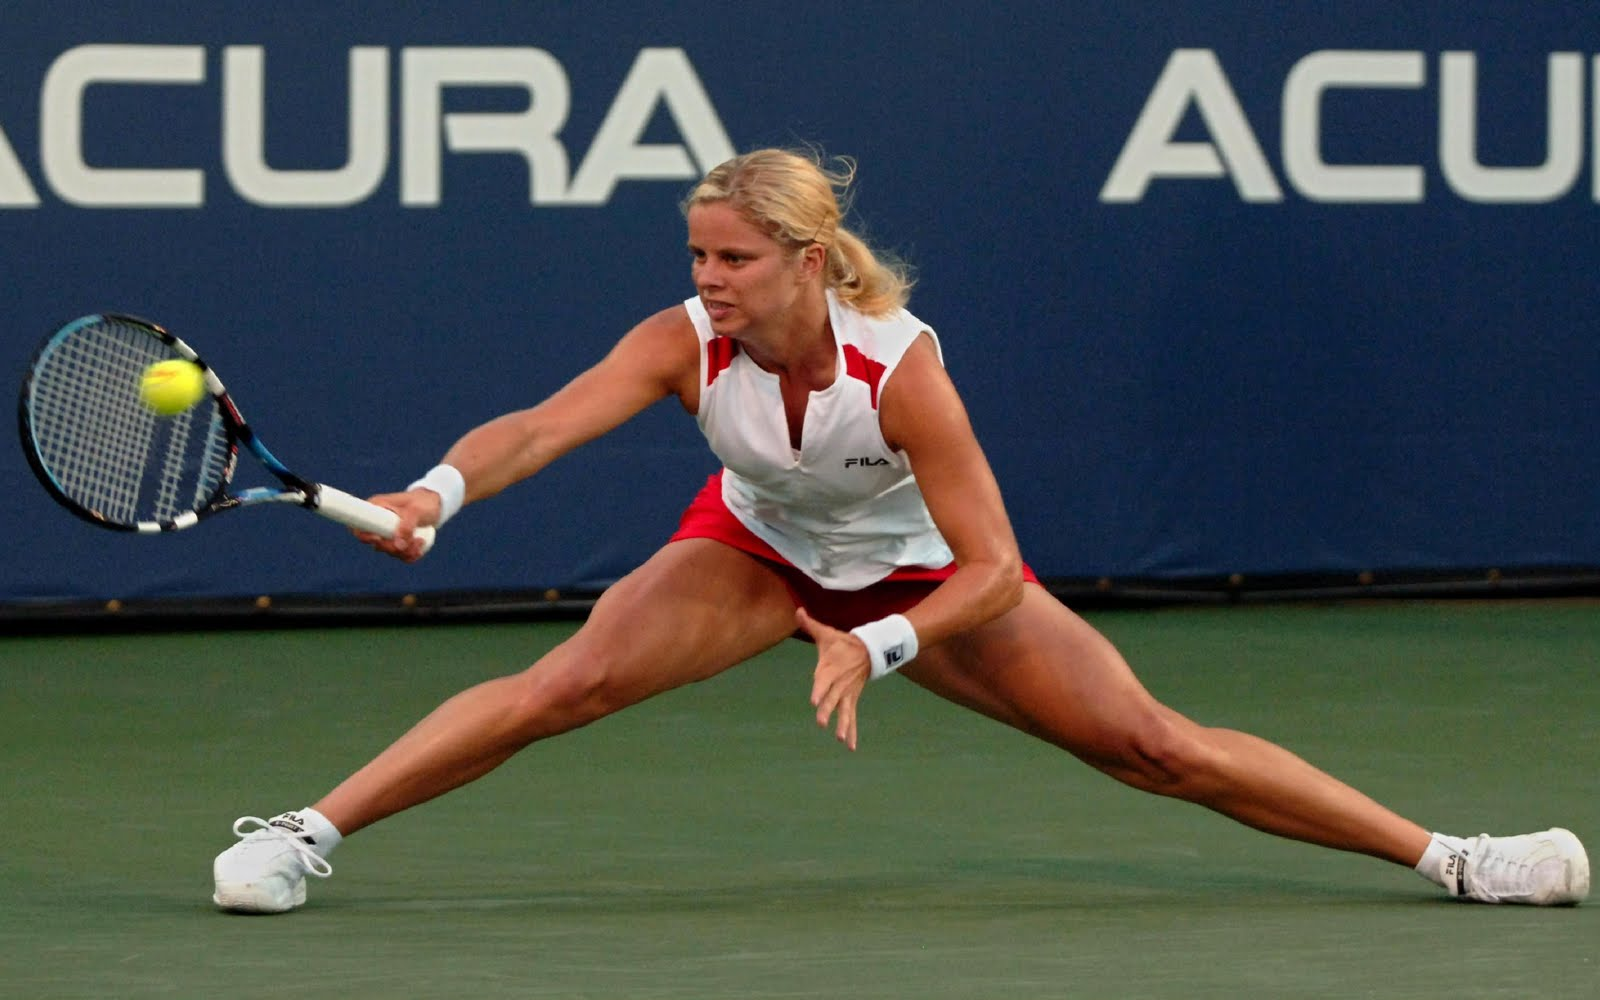 Kim Clijsters Hot Images Hot Pictures Hot Wallpapers 2011